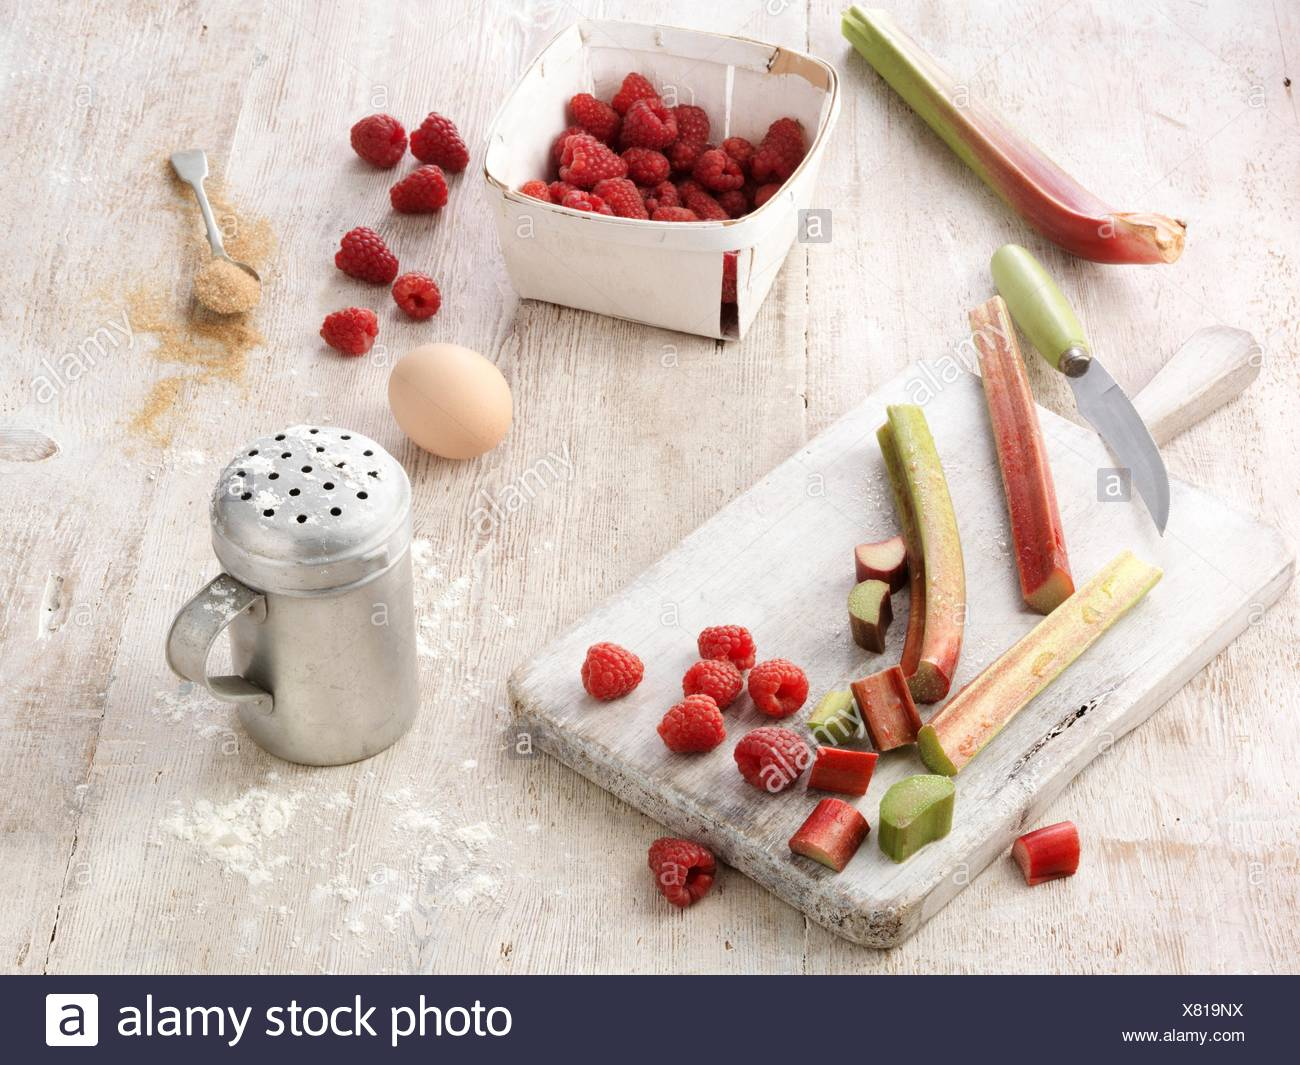 Ingredients for rhubarb and raspberry cobbler pudding on whitewashed wooden table - Stock Image